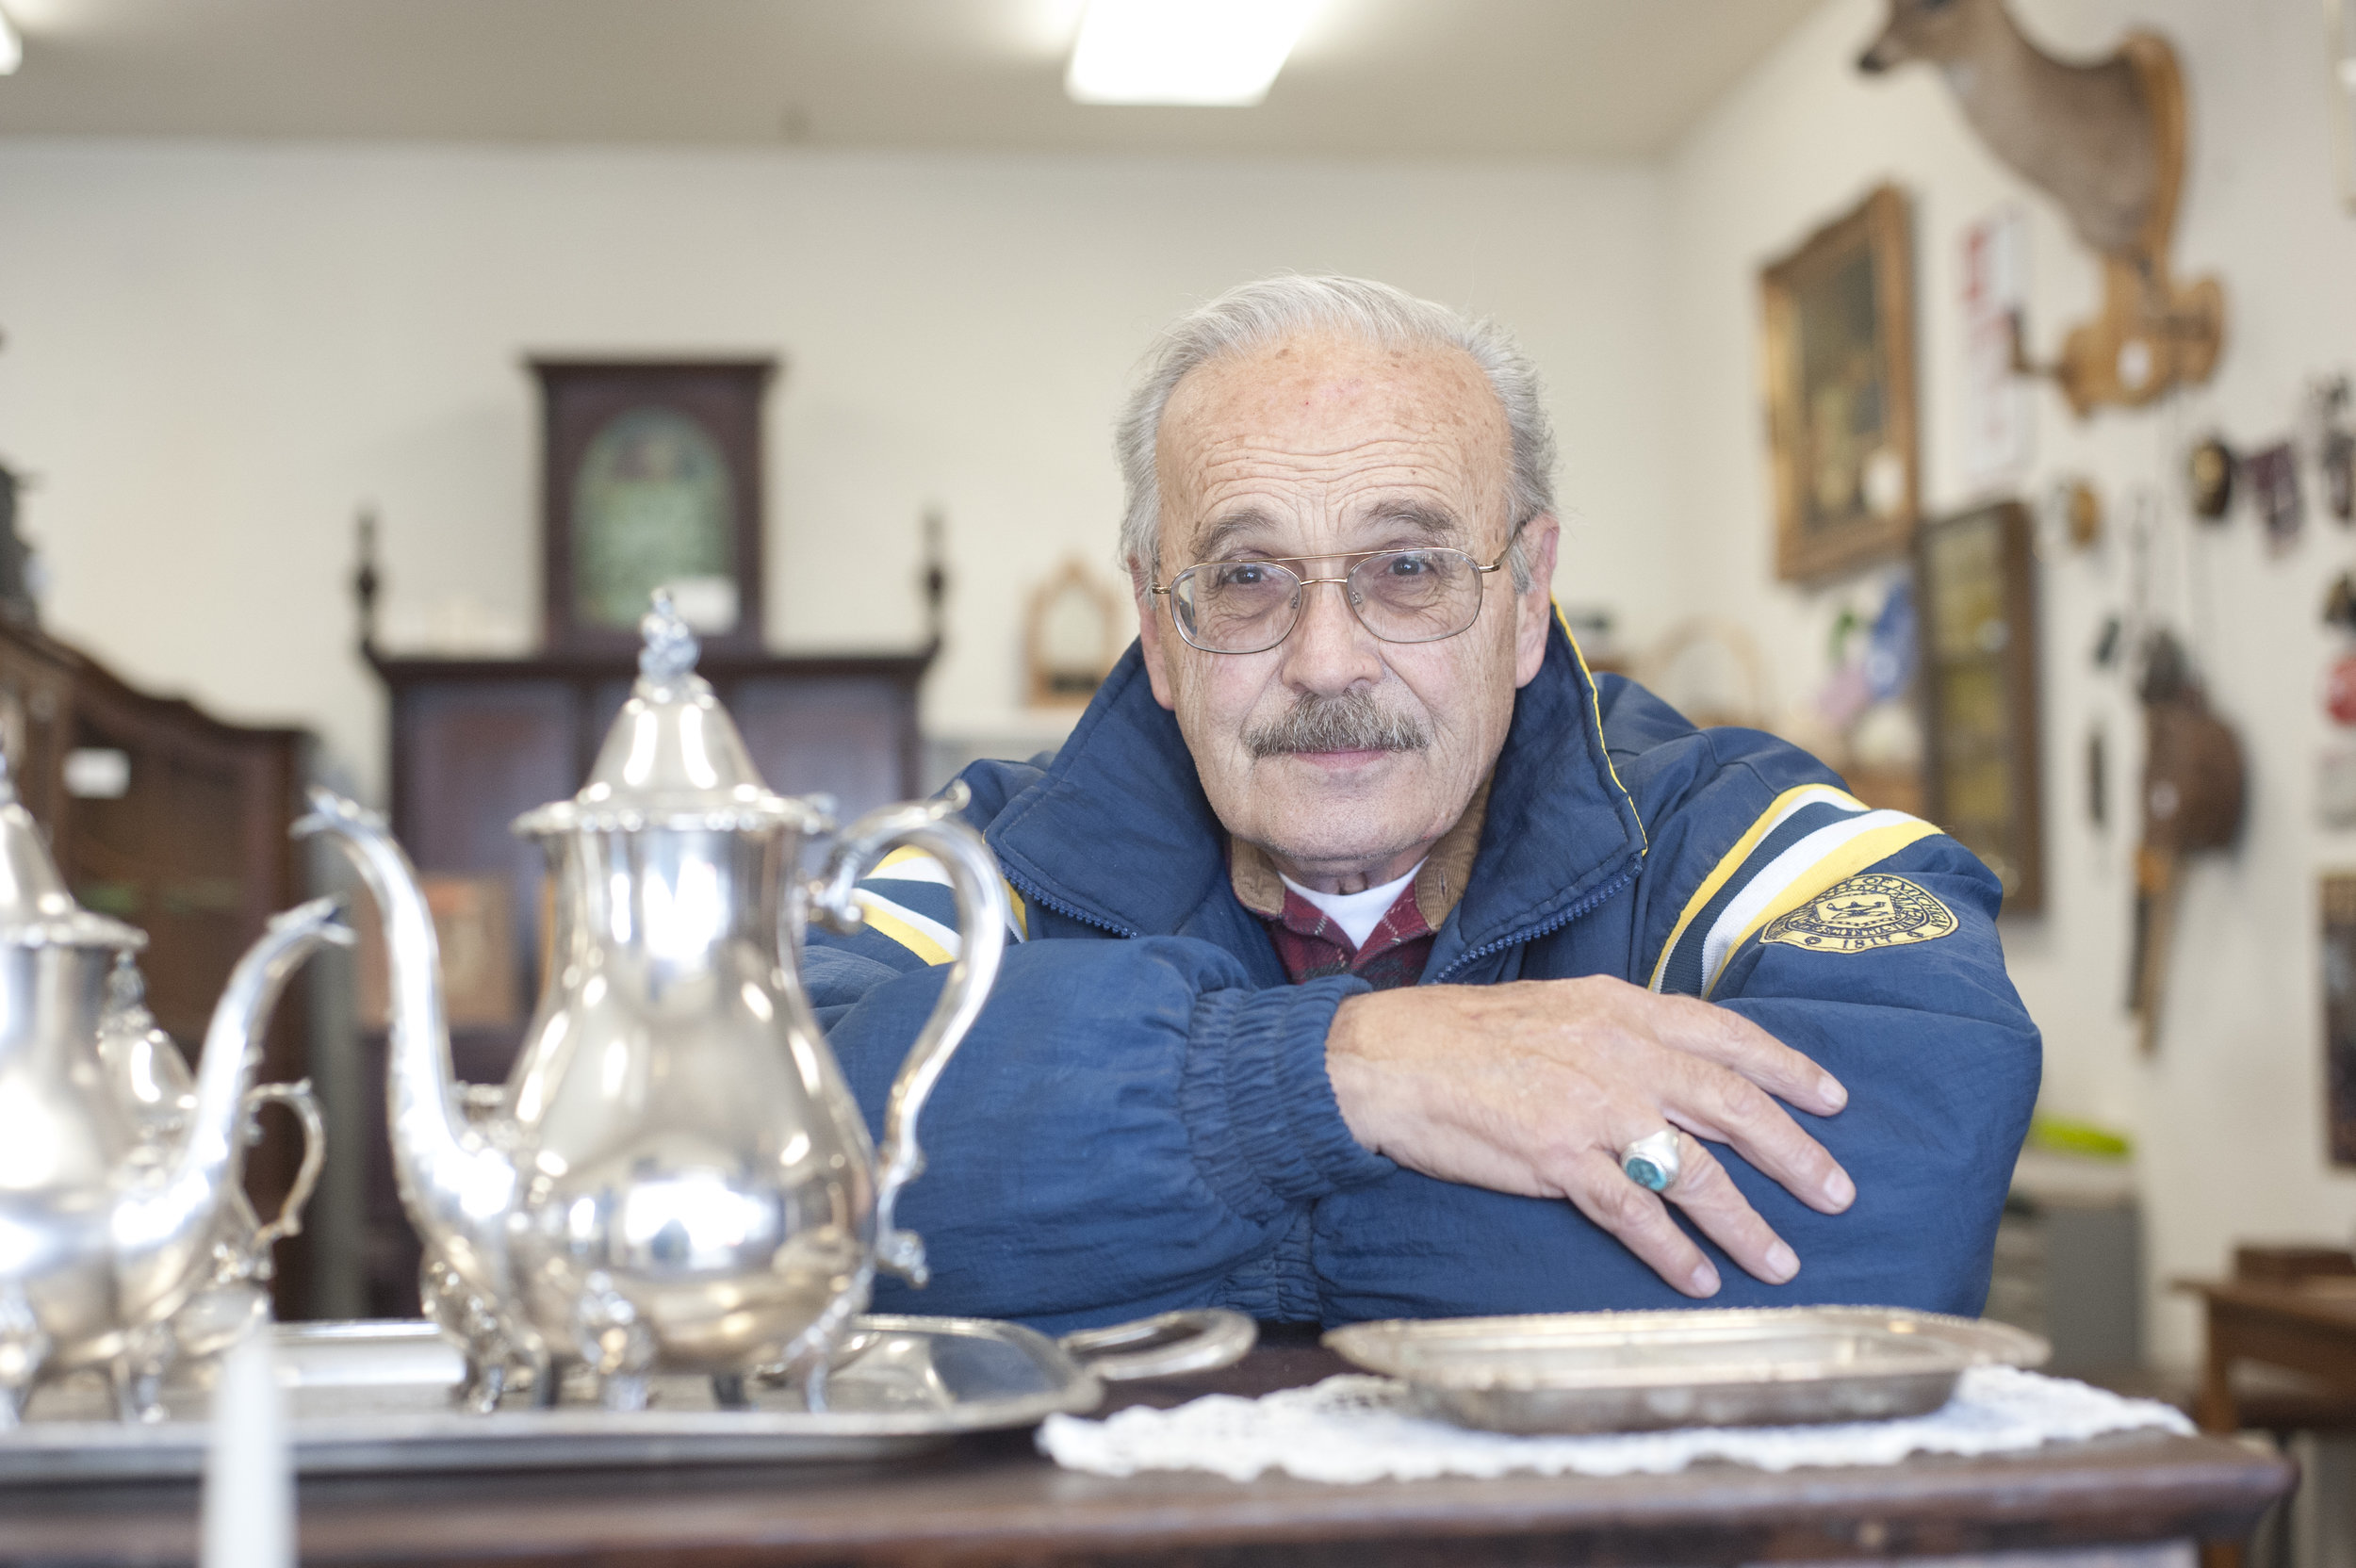 Sam Davidson, owner of Fox Farm Antique Mall, discusses his love for antiques, specifically wood pieces while sitting in his shop March 15, 2018. Davidson's business is 25 years old, and he credits the longtime success to the mall format that features a variety of vendors.